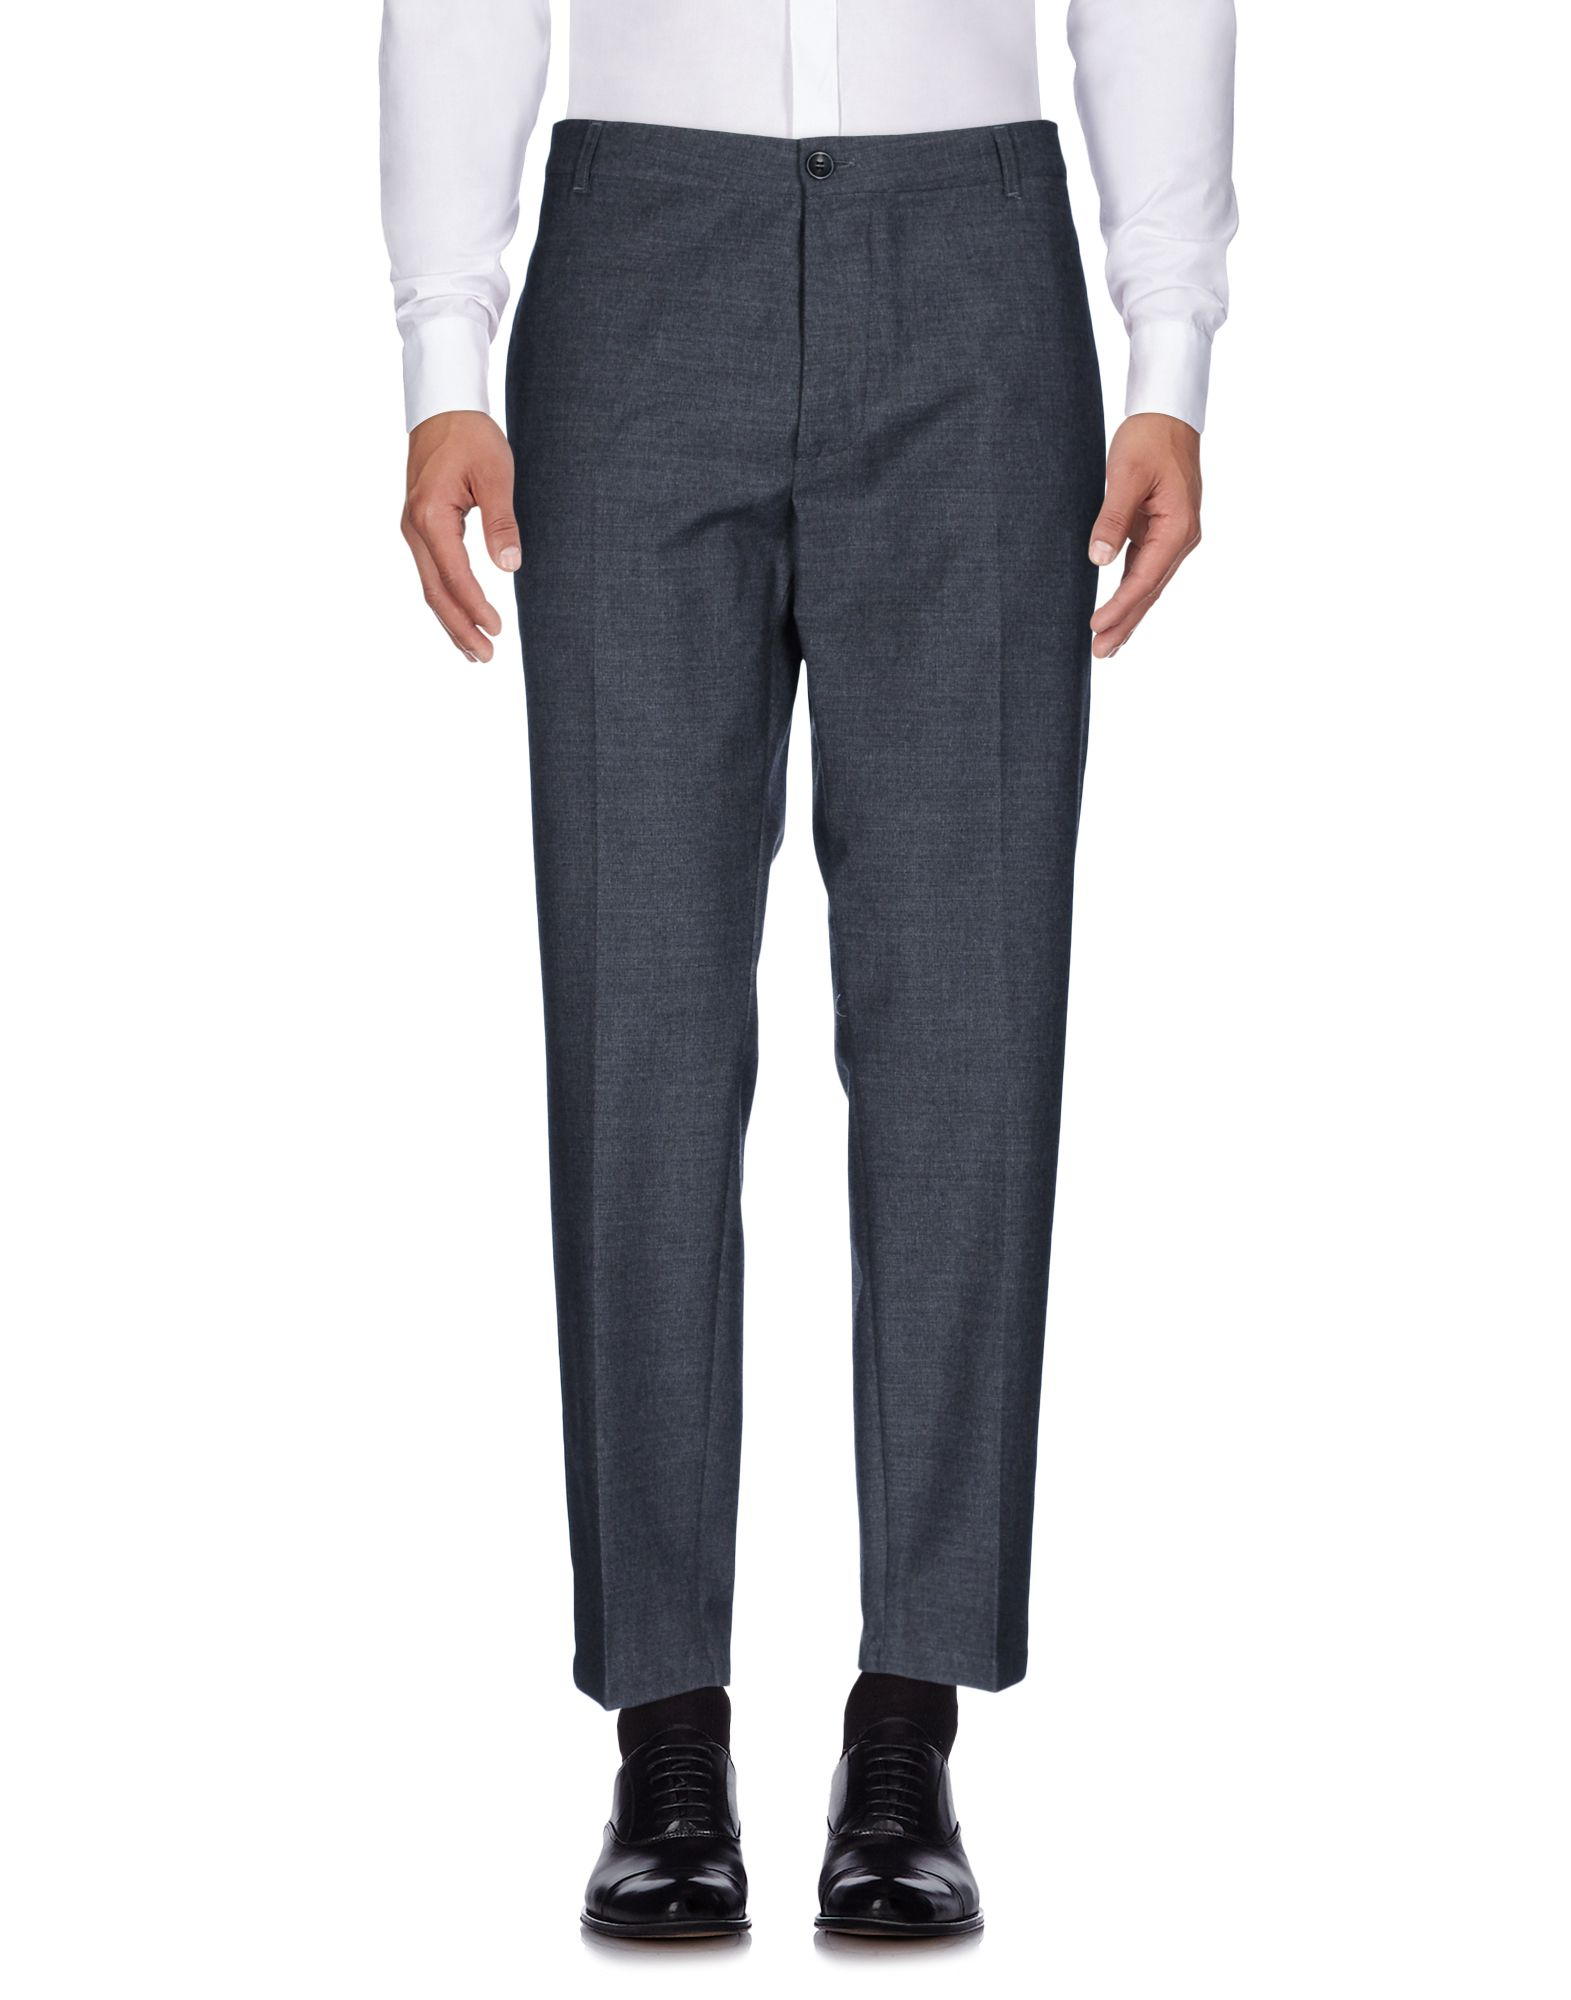 Pantalone Department 5 Uomo - Acquista online su